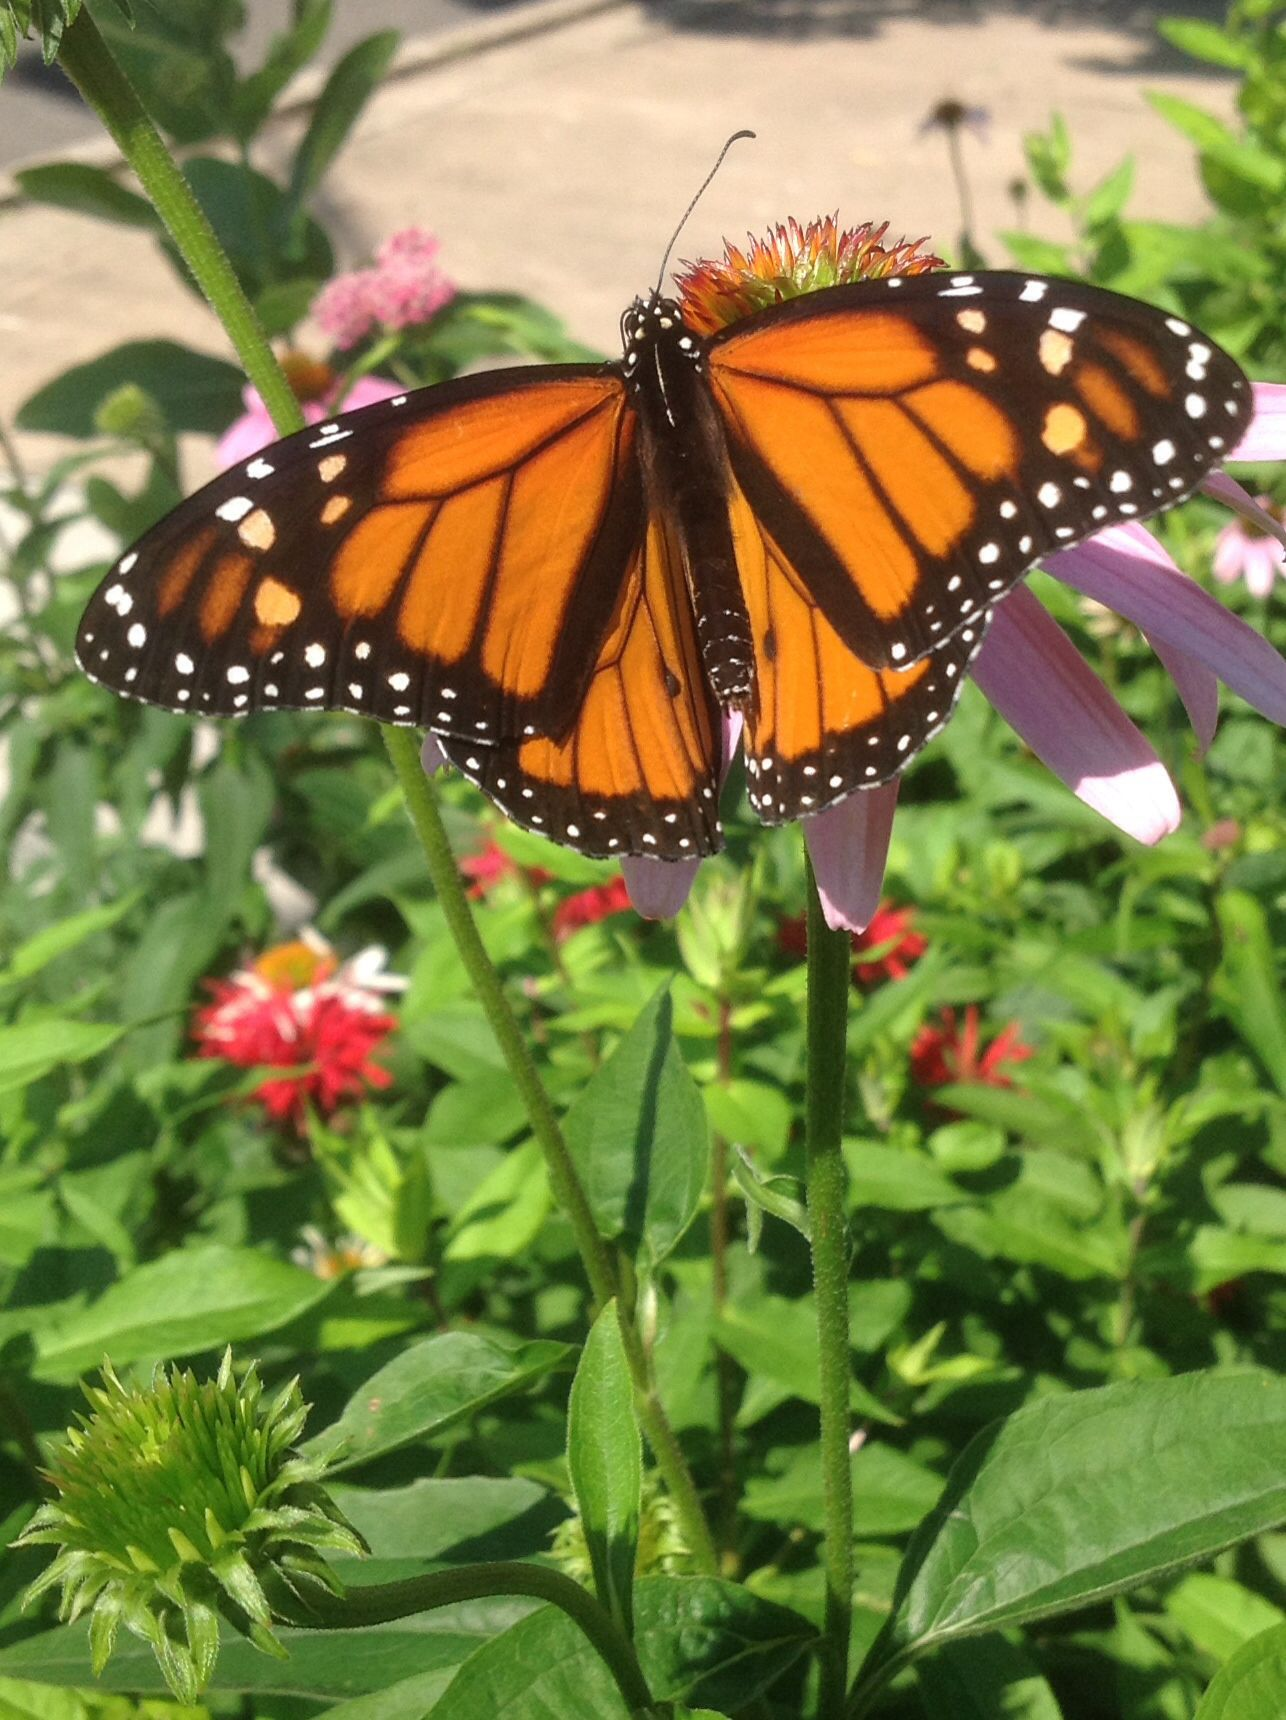 A monarch on a cone flower in the yard.